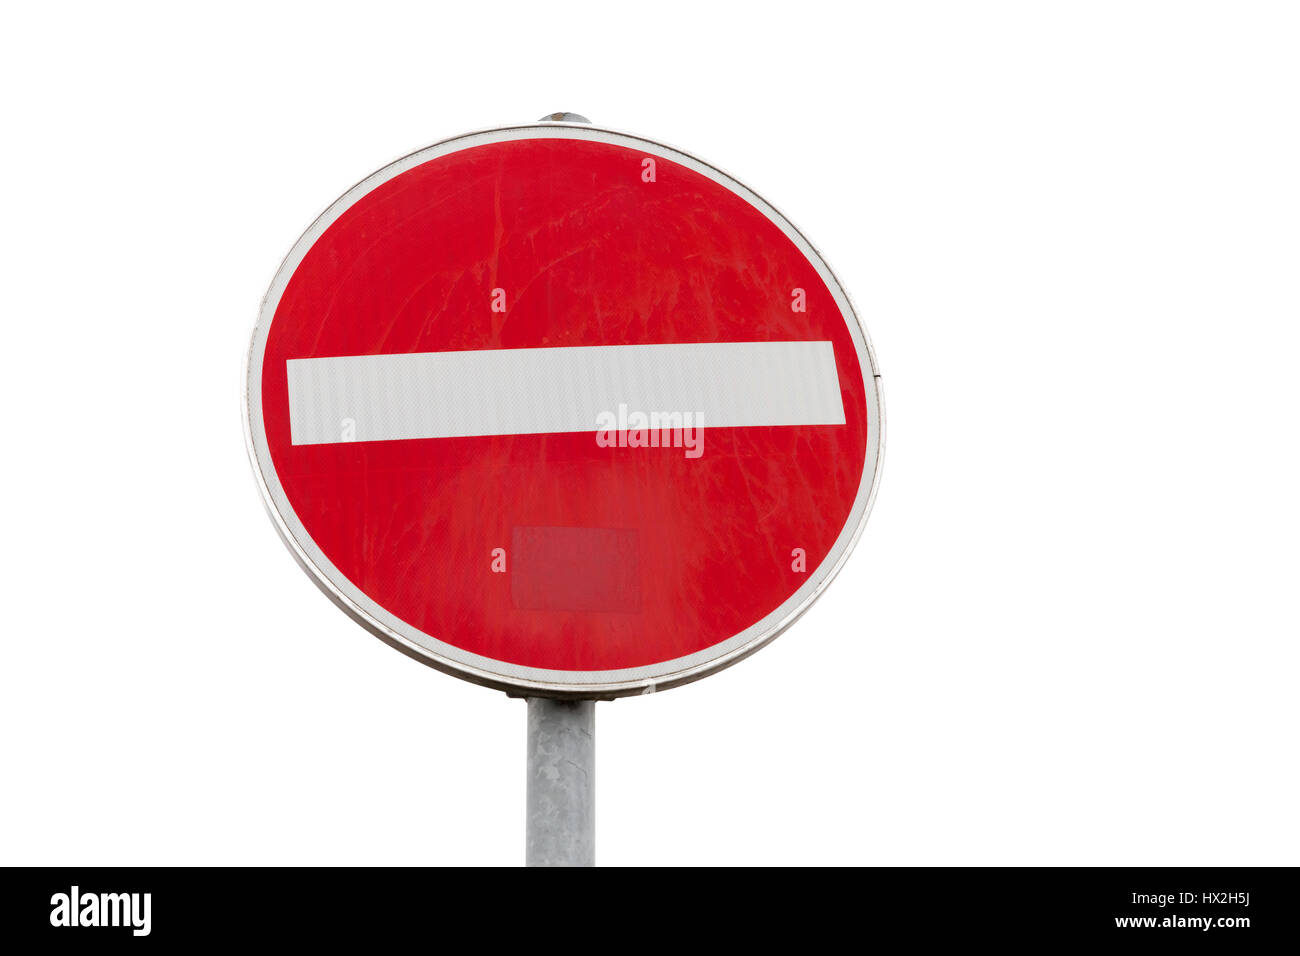 Round red sign No Entry road sign isolated on white background, close up photo - Stock Image